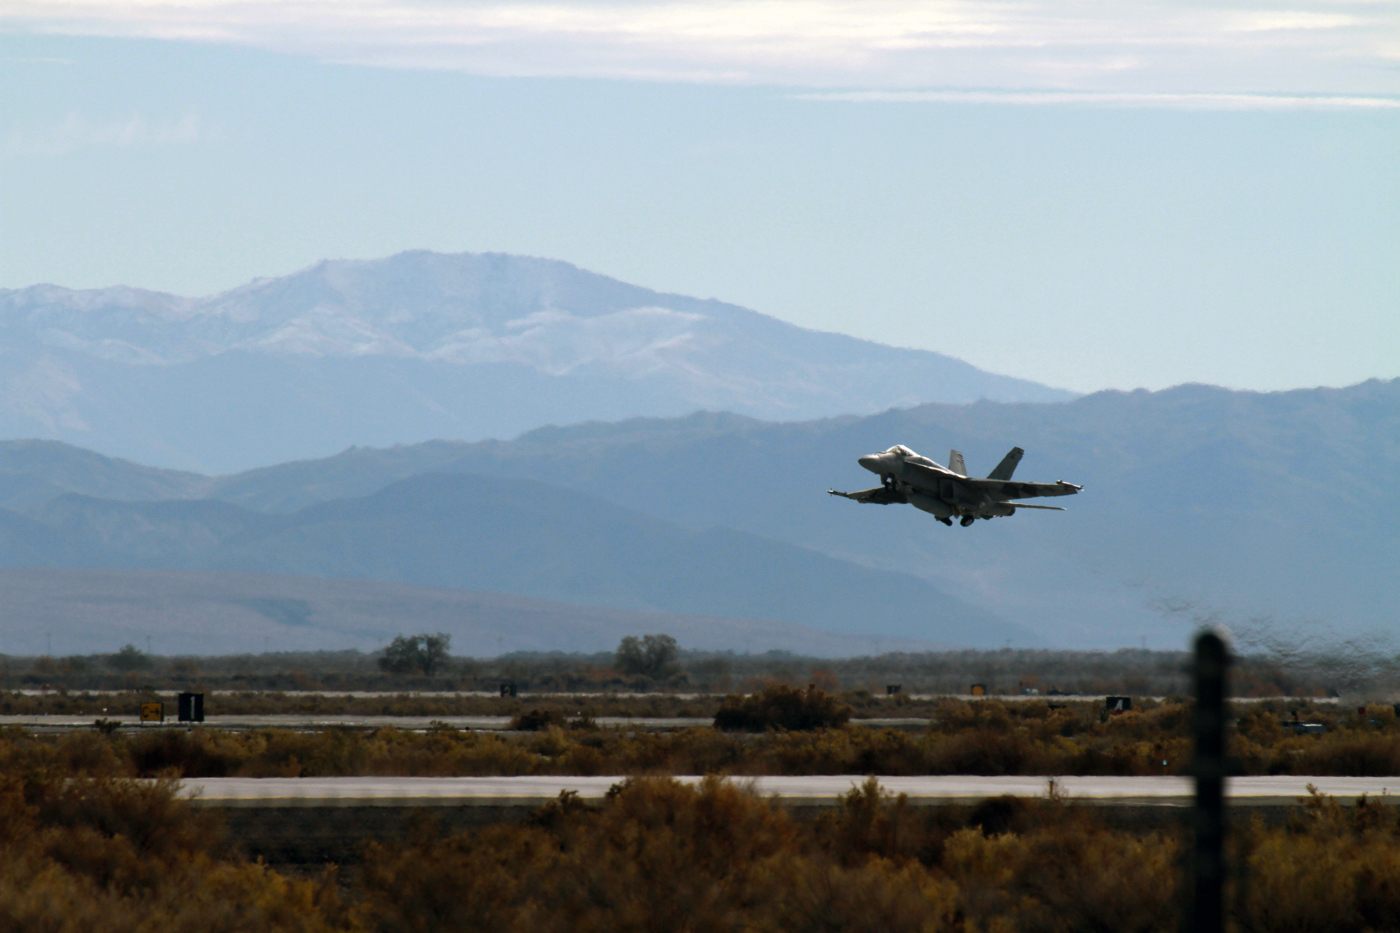 An F/A-18E Super Hornet assigned to the Knighthawks of Strike Fighter Squadron (VFA) 136 takes off from a runway on Naval Air Station Fallon on April 11, 2014. US Navy Photo